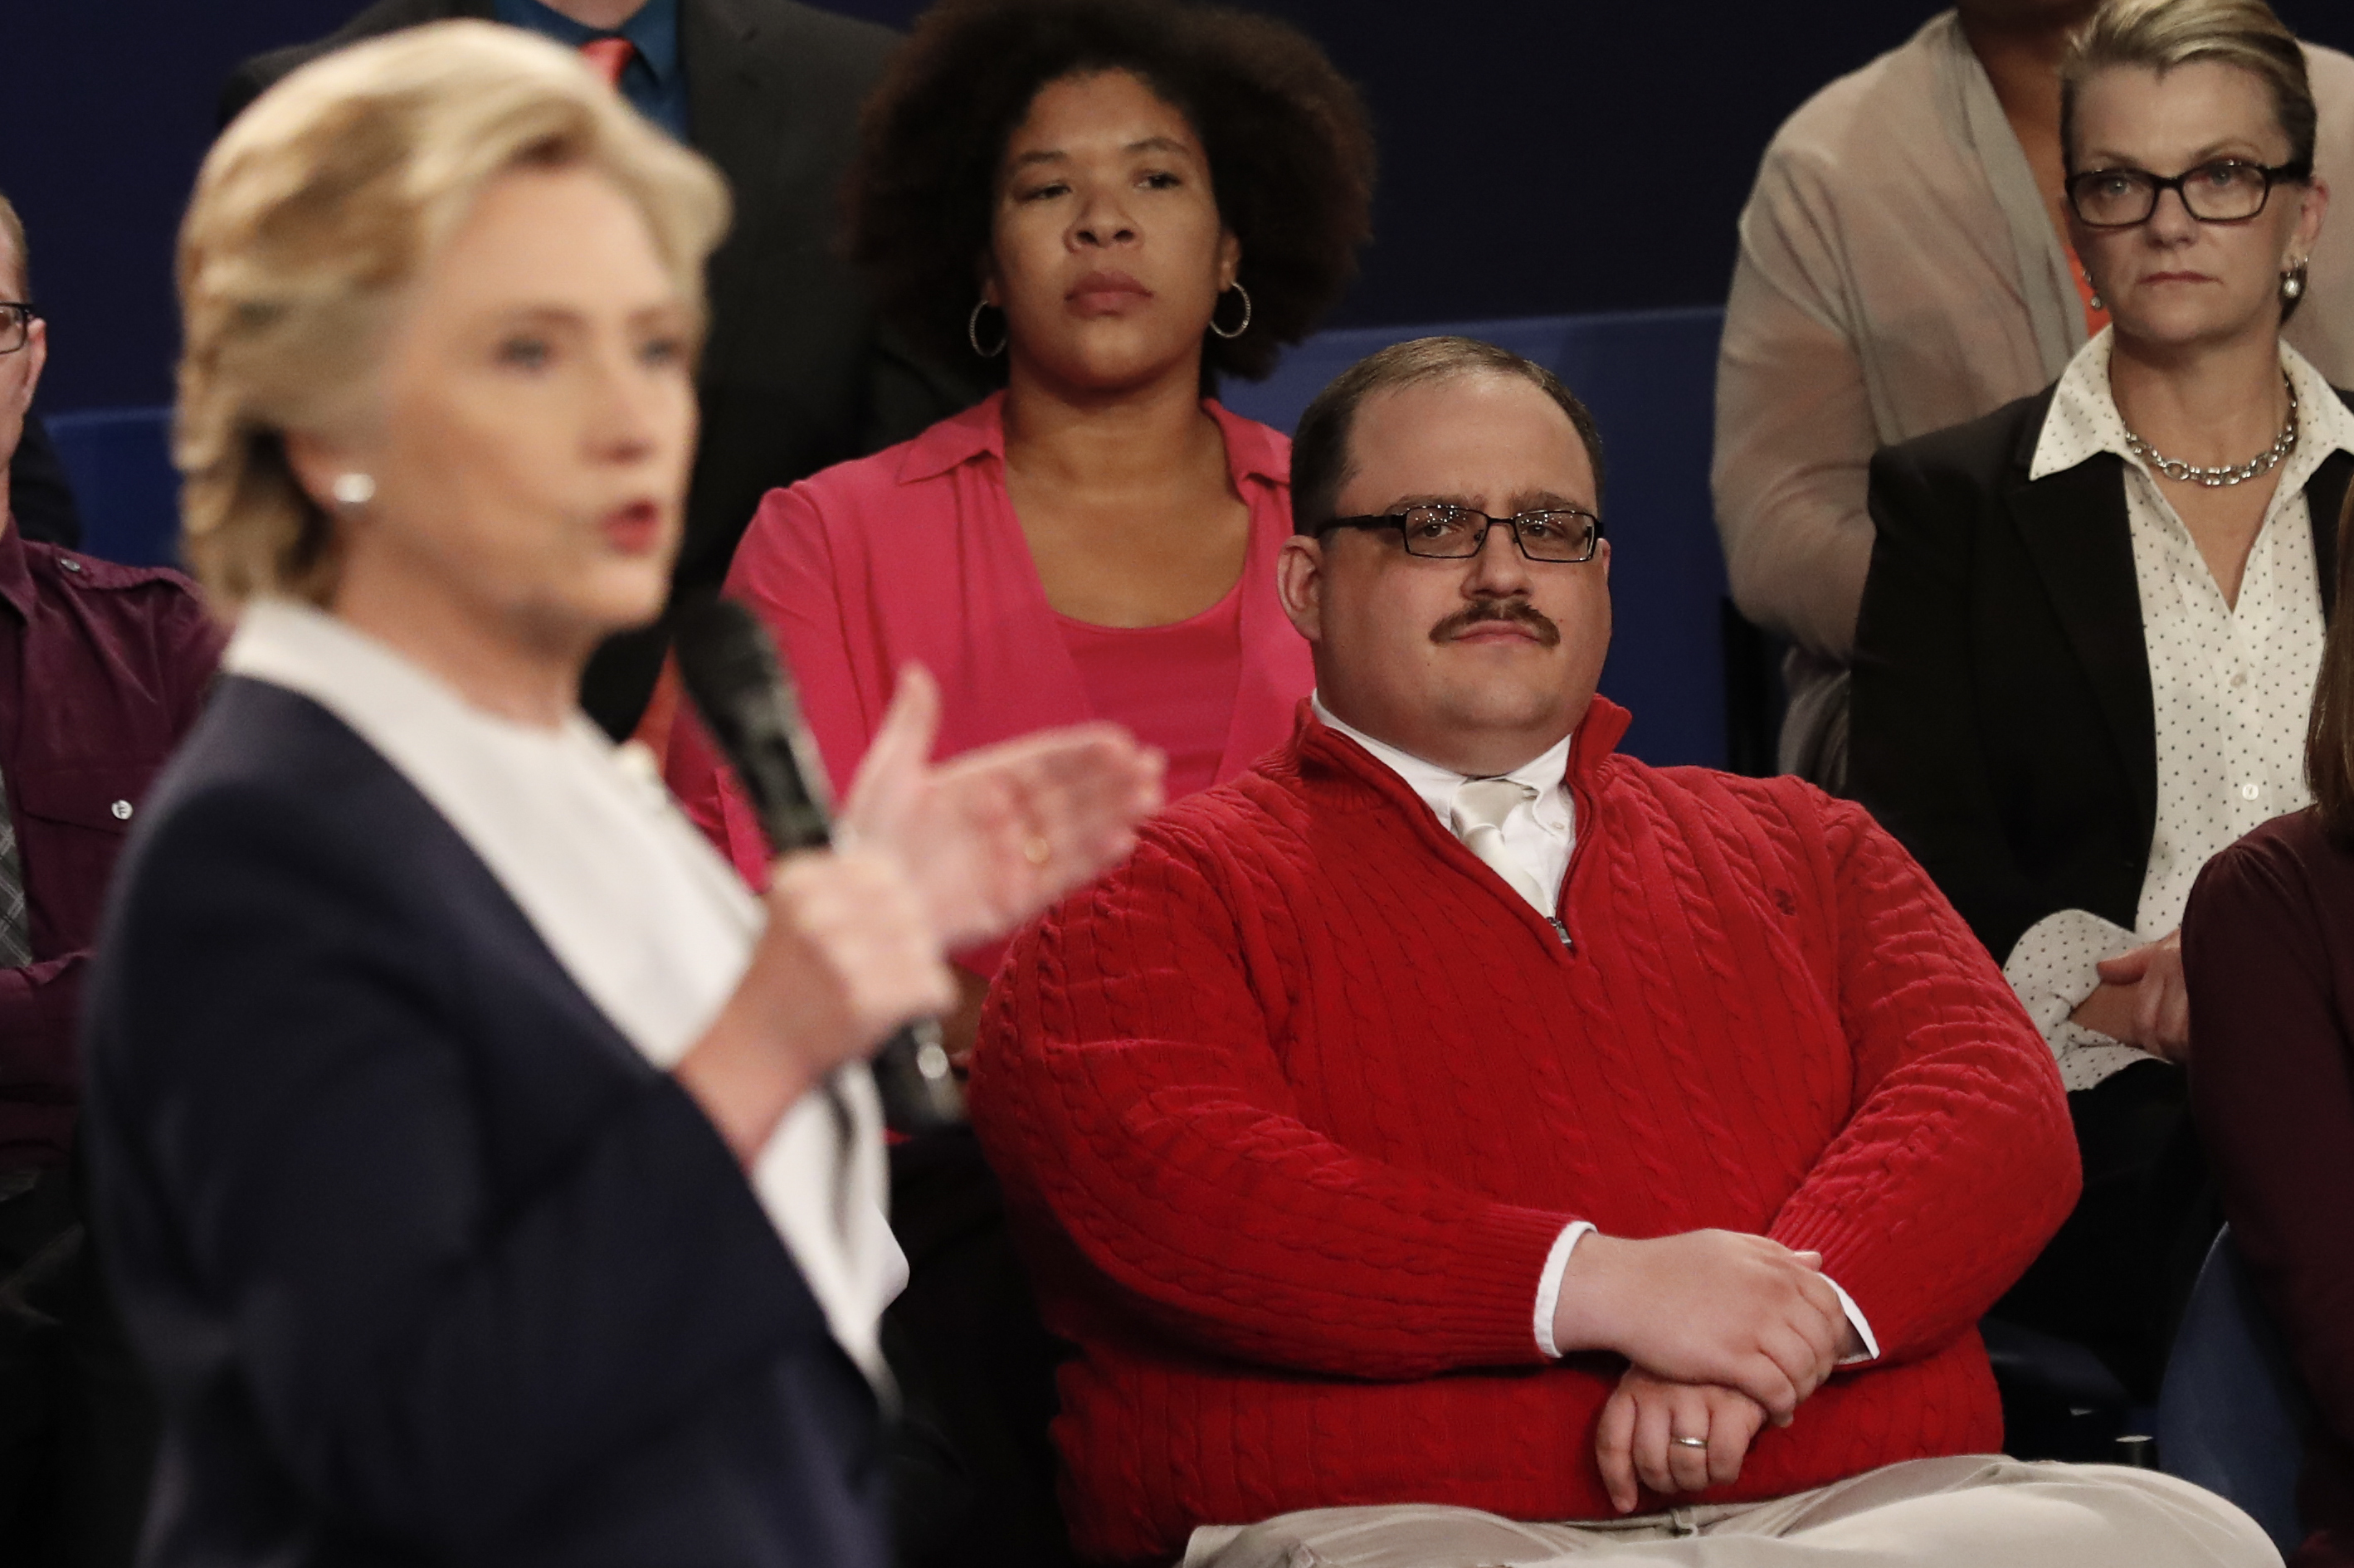 Ken Bone has history of making shady comments online